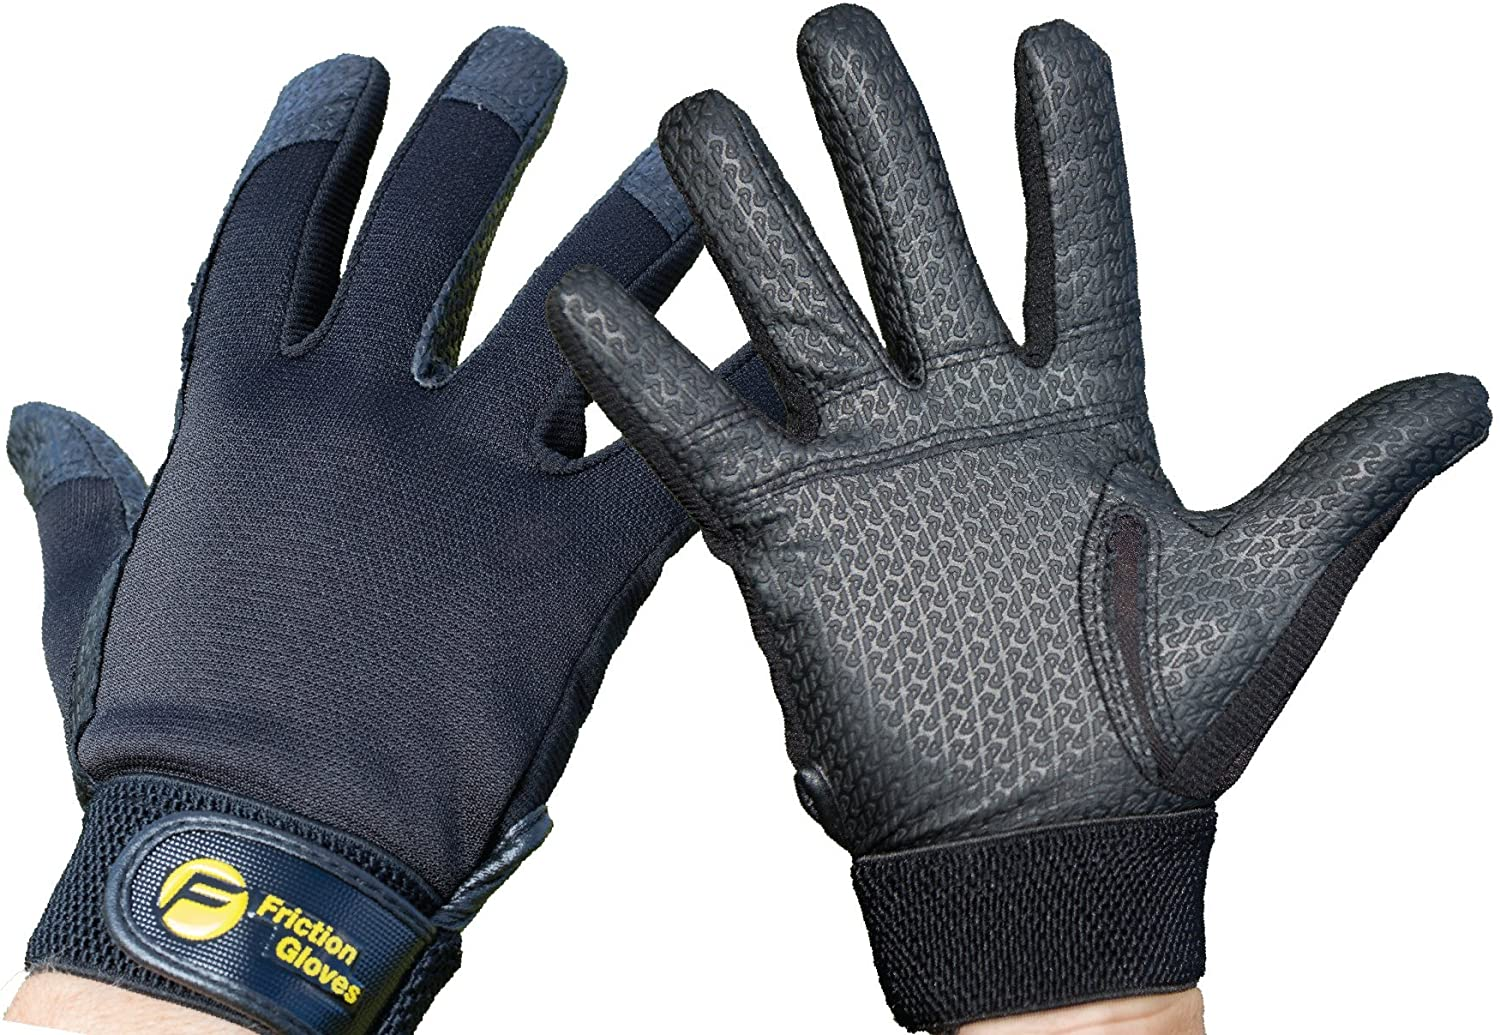 Improve Throws /& Catches #1 Worlds Ultimate Glove Friction Gloves Friction Ultimate Frisbee Gloves